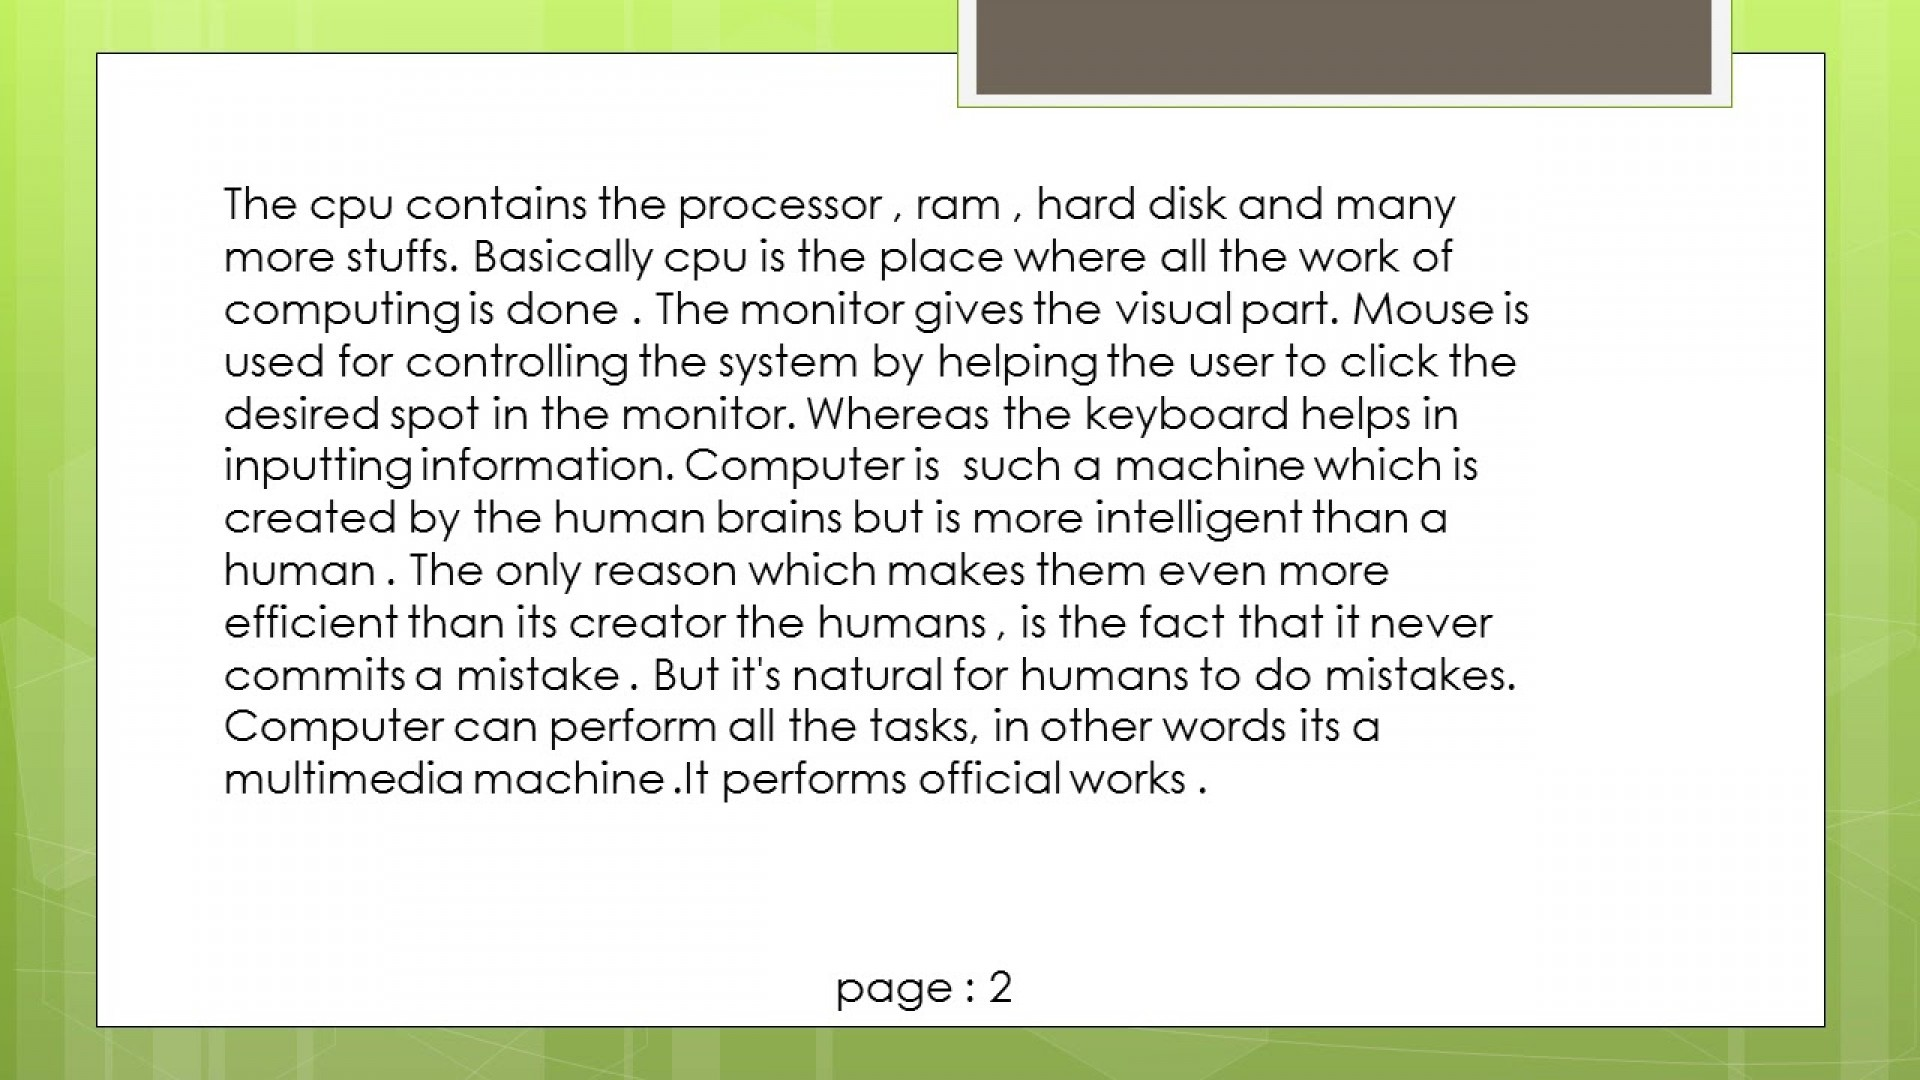 009 Essay On Computer Maxresdefault Fearsome Science In Hindi Urdu 1920